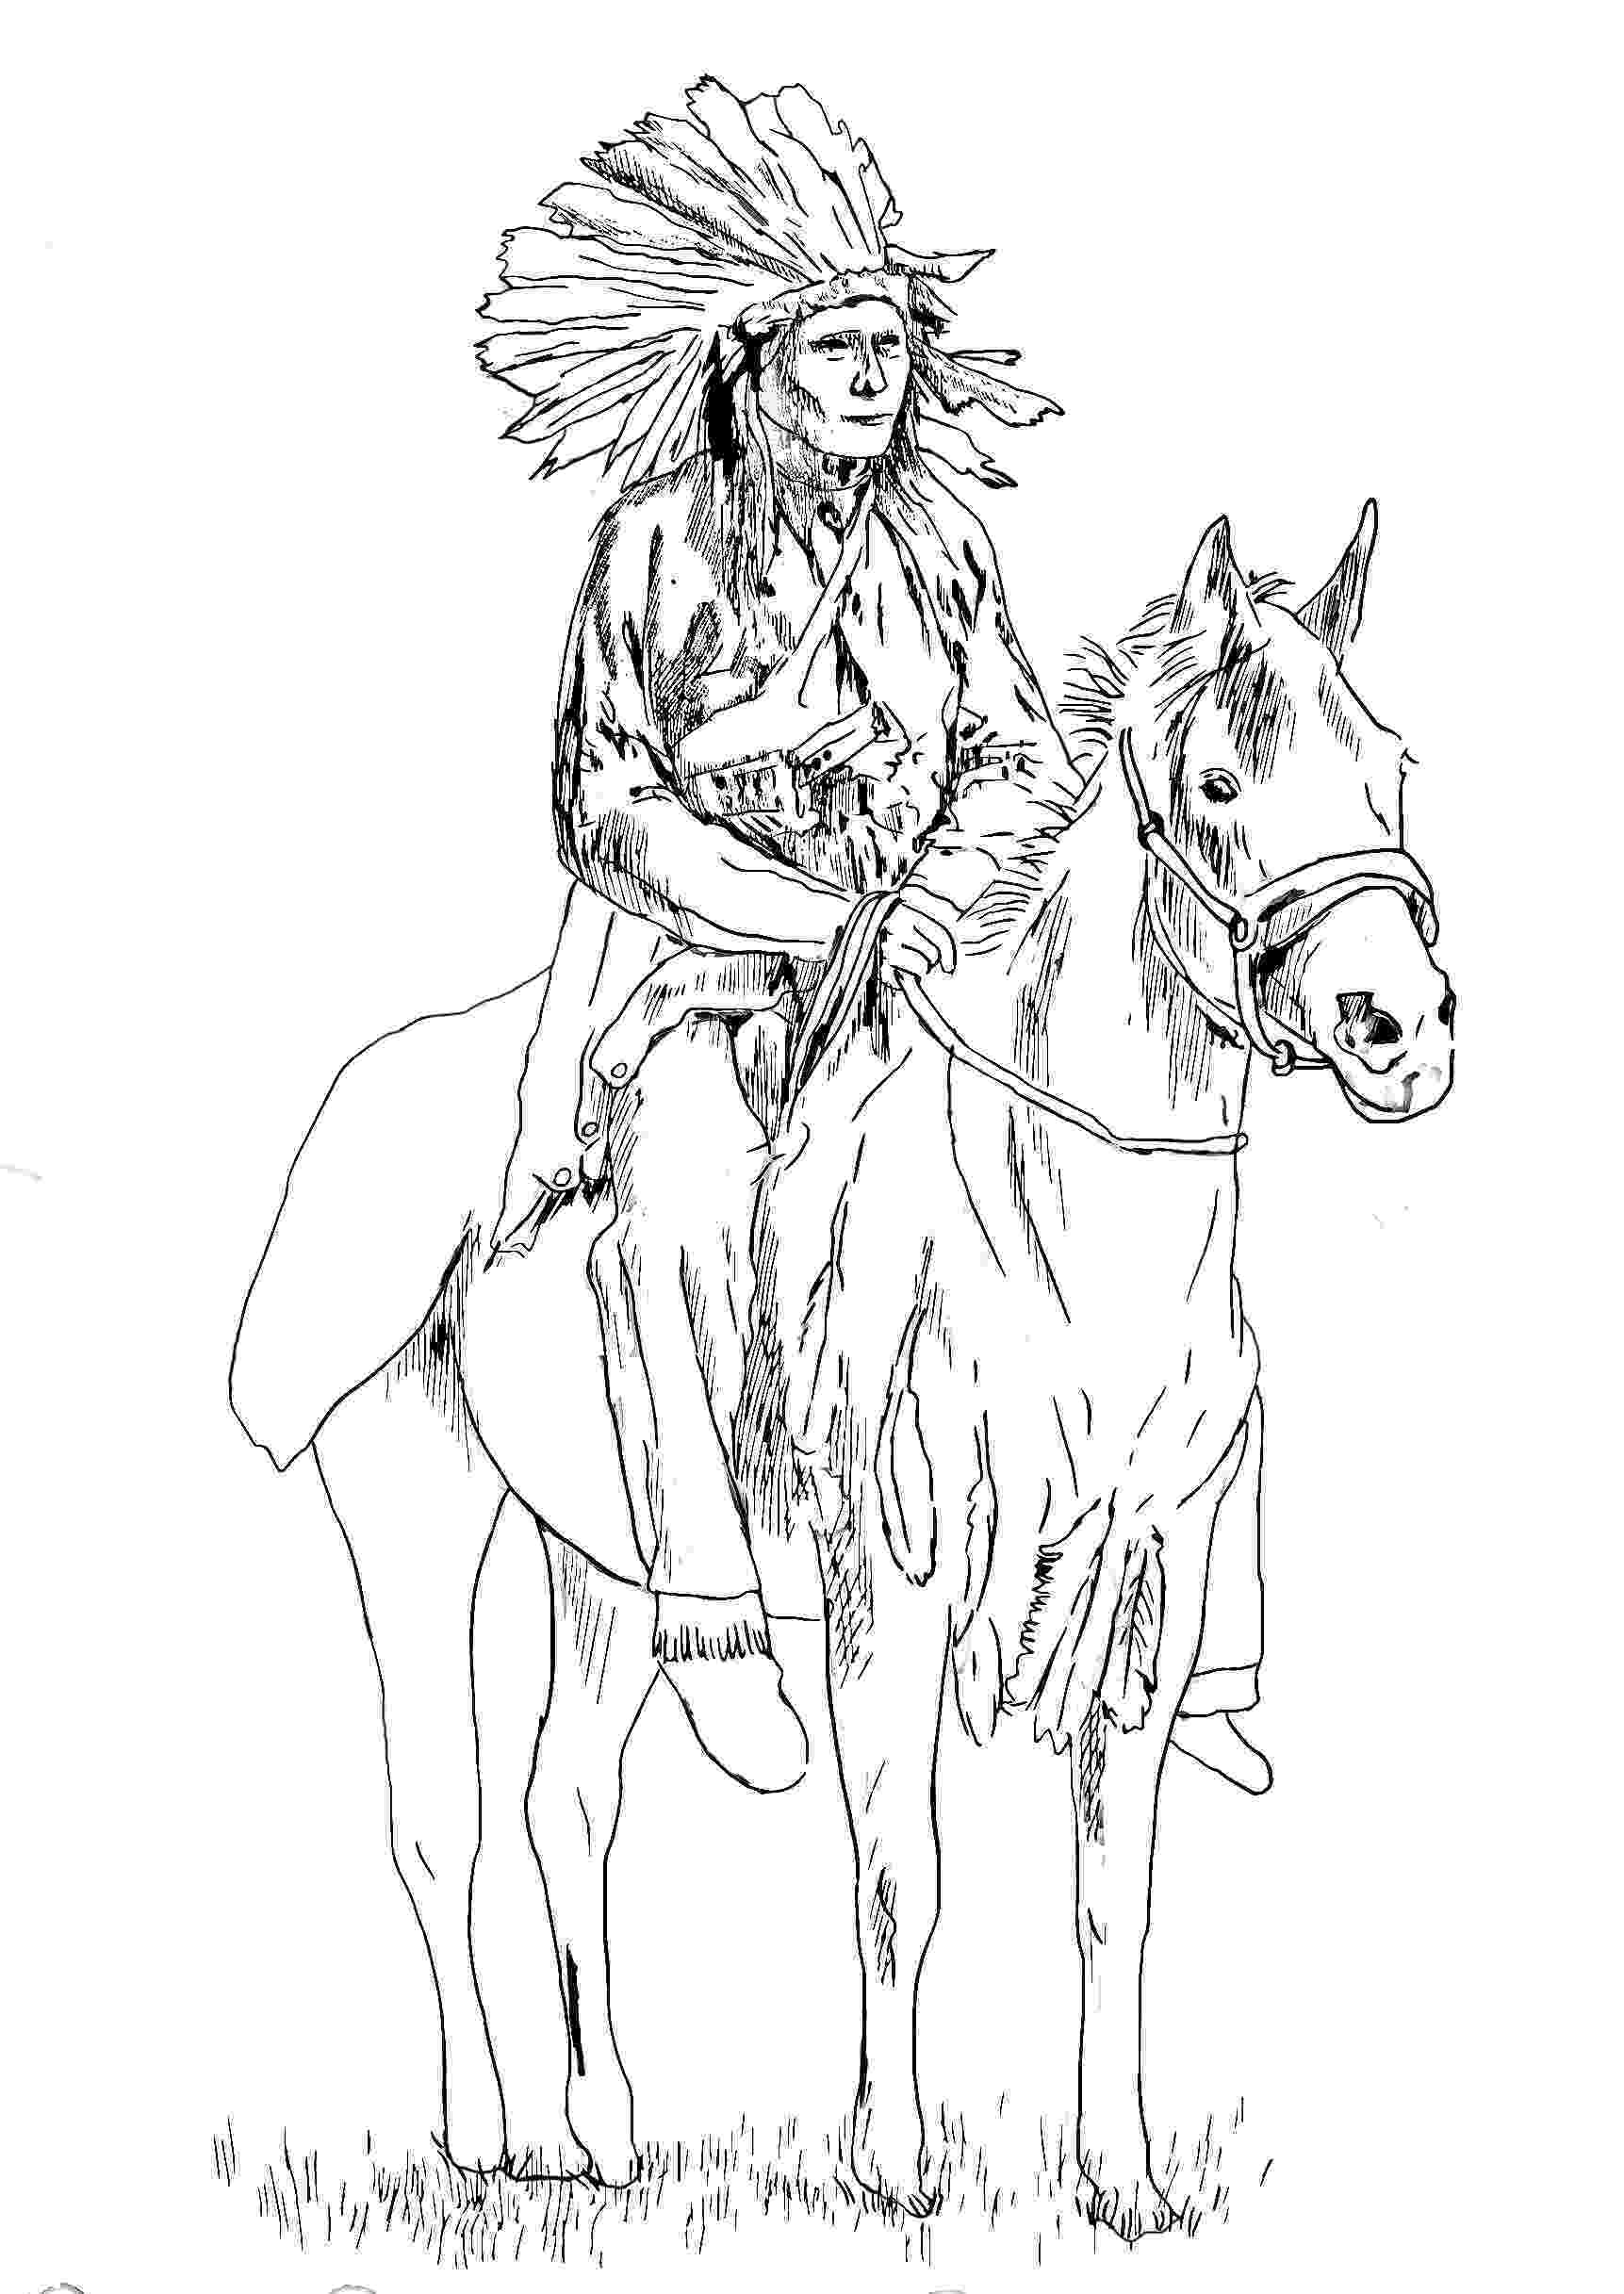 free printable native american coloring pages native american on his horse native american adult pages coloring printable free american native